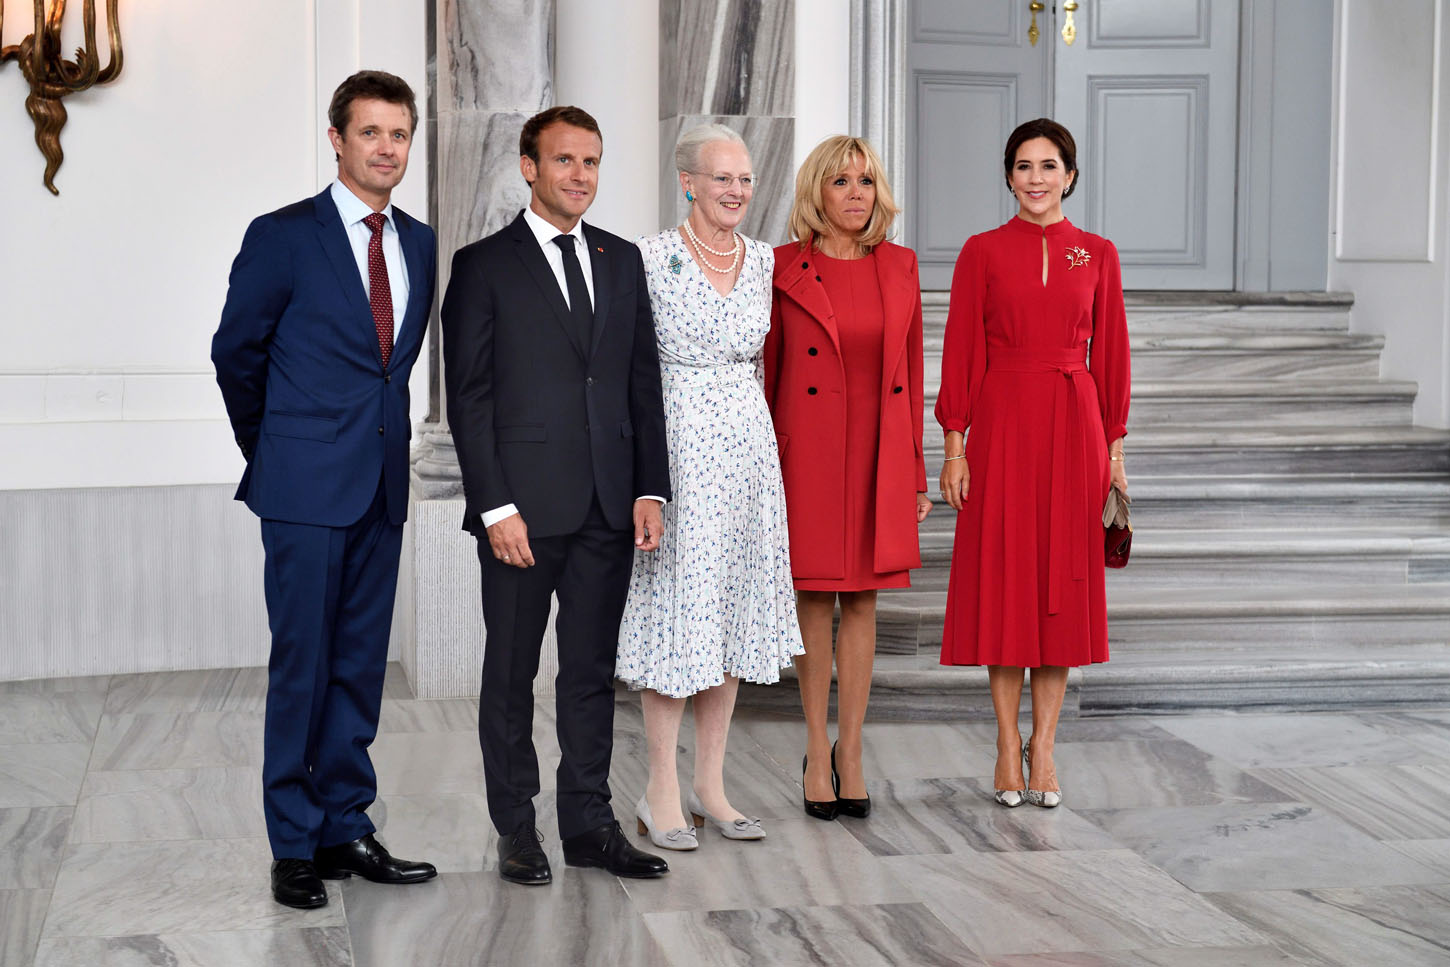 Queen Margrethe of Denmark, Crown Prince Frederik of Denmark, Crown Princess Mary, French President Emmanuel Macron and his wife Brigitte Macron are seen at Amalienborg Castle in Copenhagen, Denmark August 28, 2018. Ritzau Scanpix/Tariq Mikkel Khan via REUTERS    ATTENTION EDITORS - THIS IMAGE WAS PROVIDED BY A THIRD PARTY. DENMARK OUT. NO COMMERCIAL OR EDITORIAL SALES IN DENMARK.